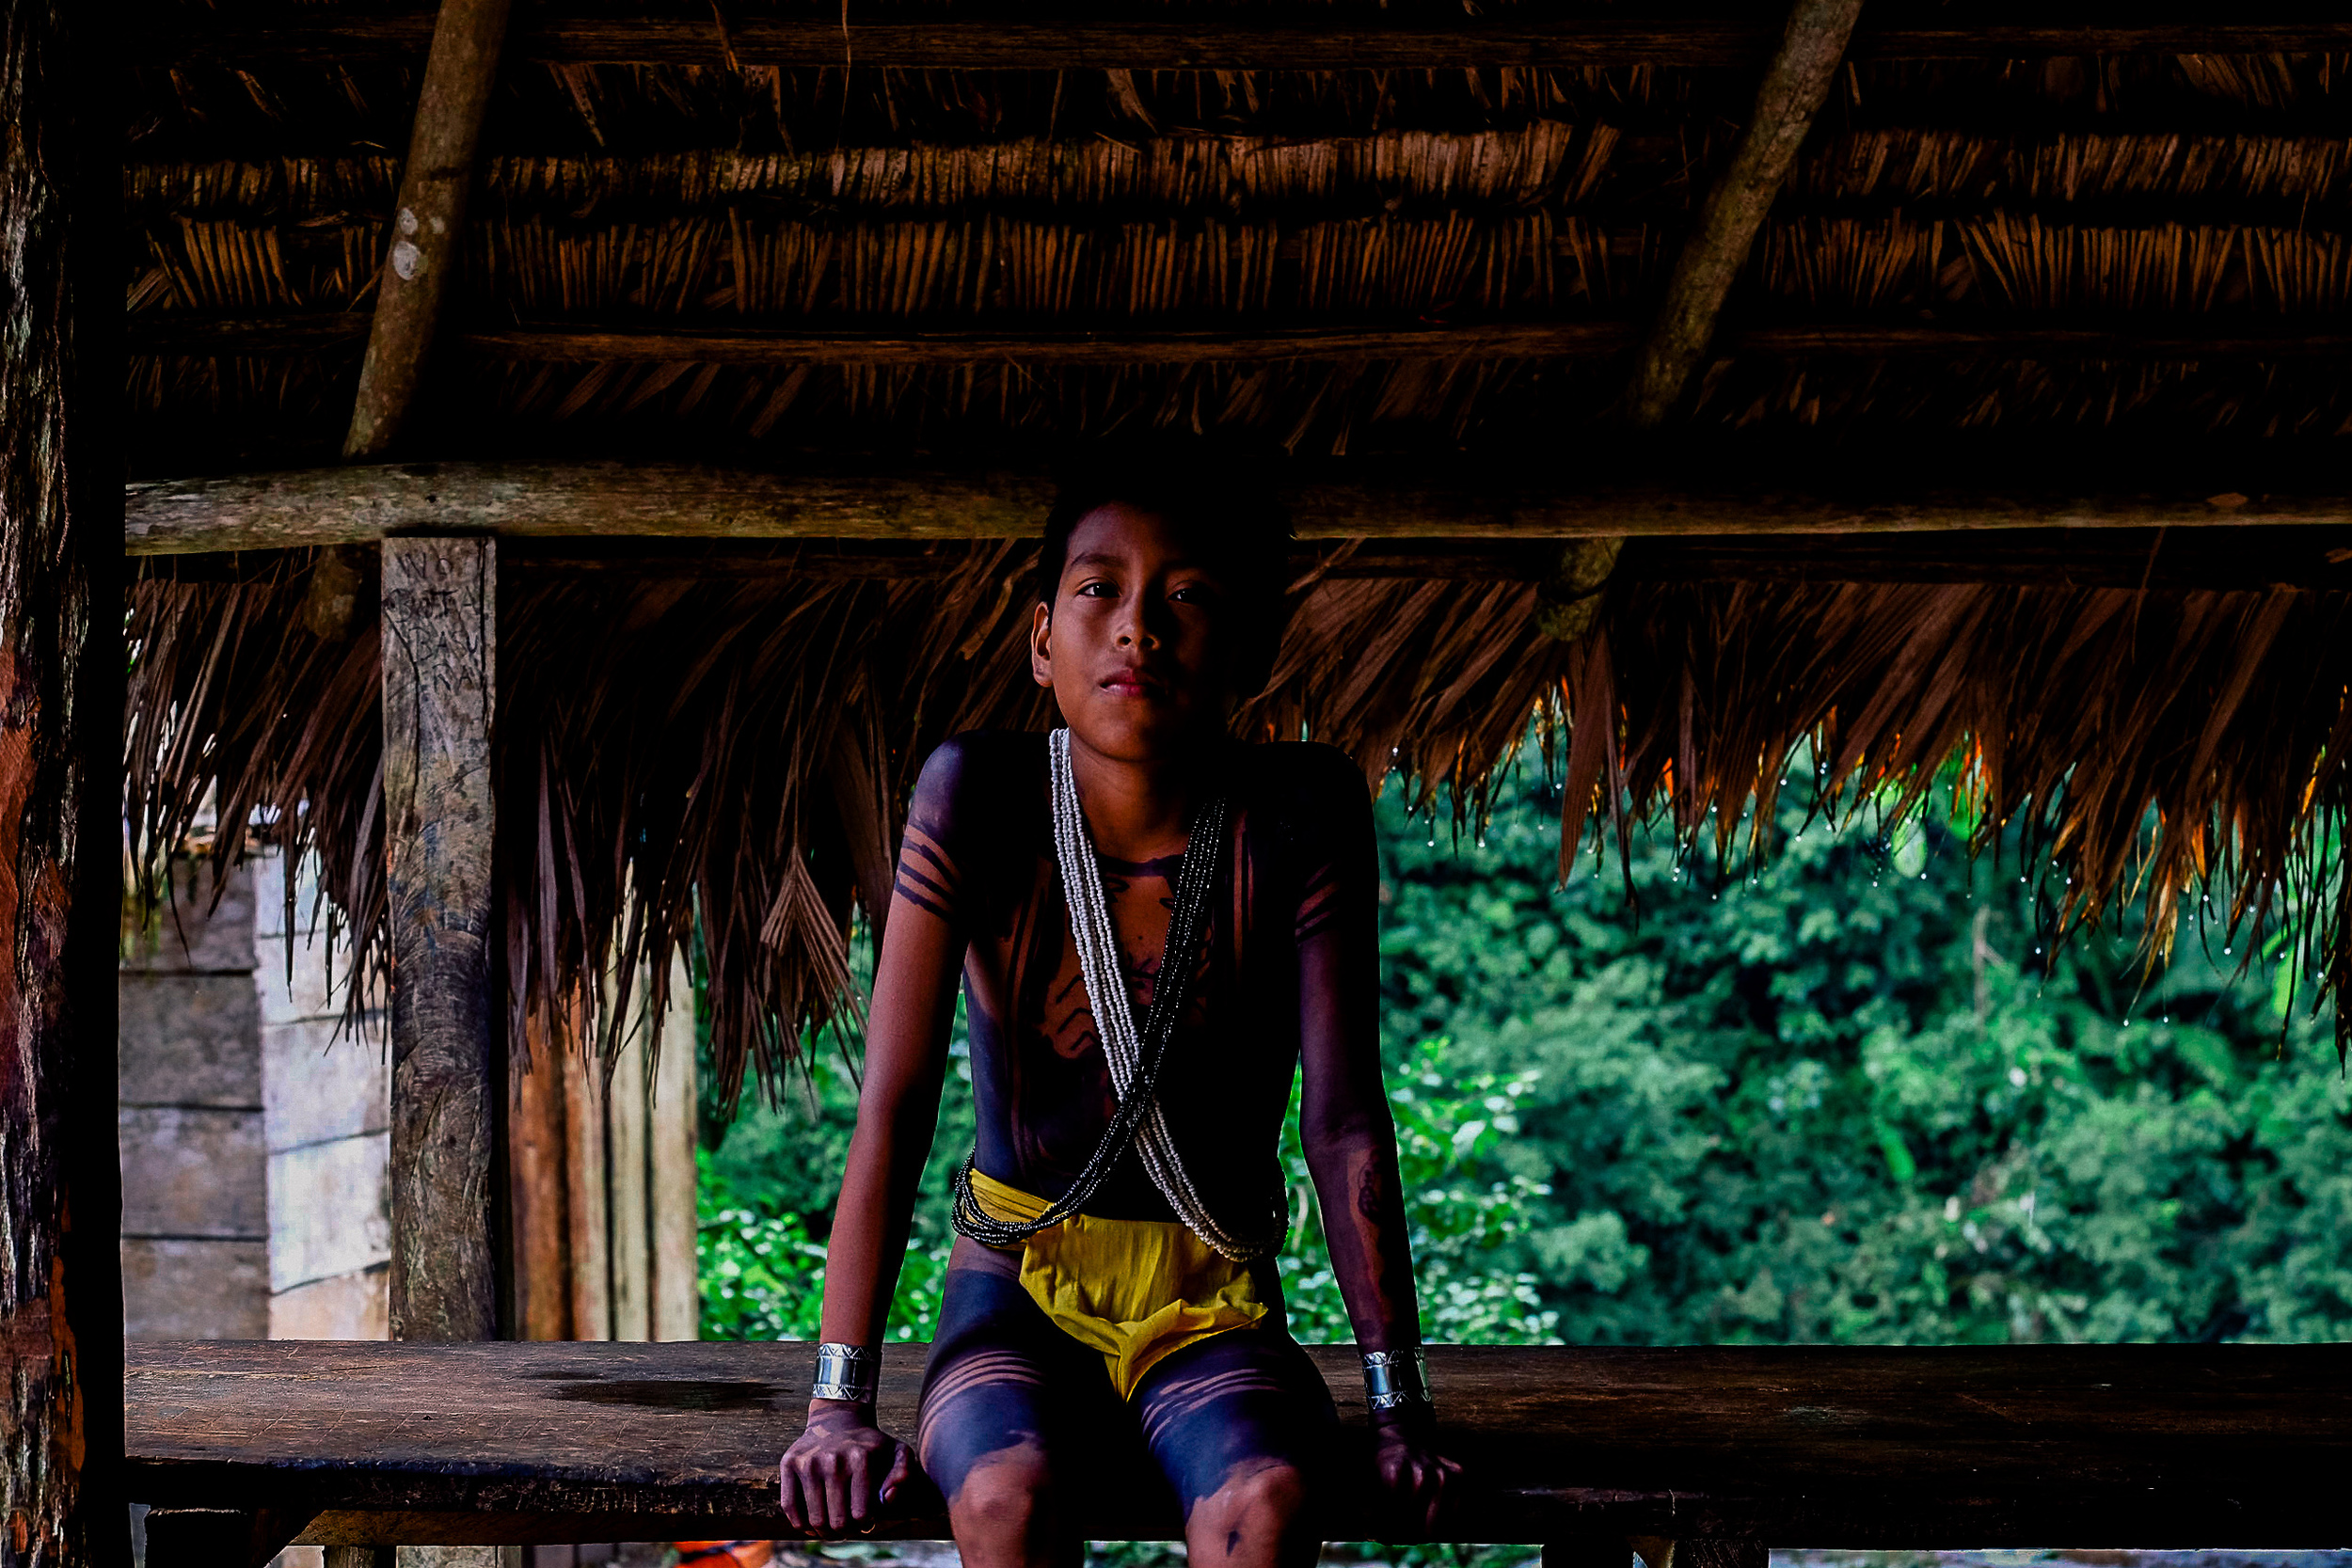 Jeriko - a curious young man of the Embera was very eager to share stories and show me around his village.